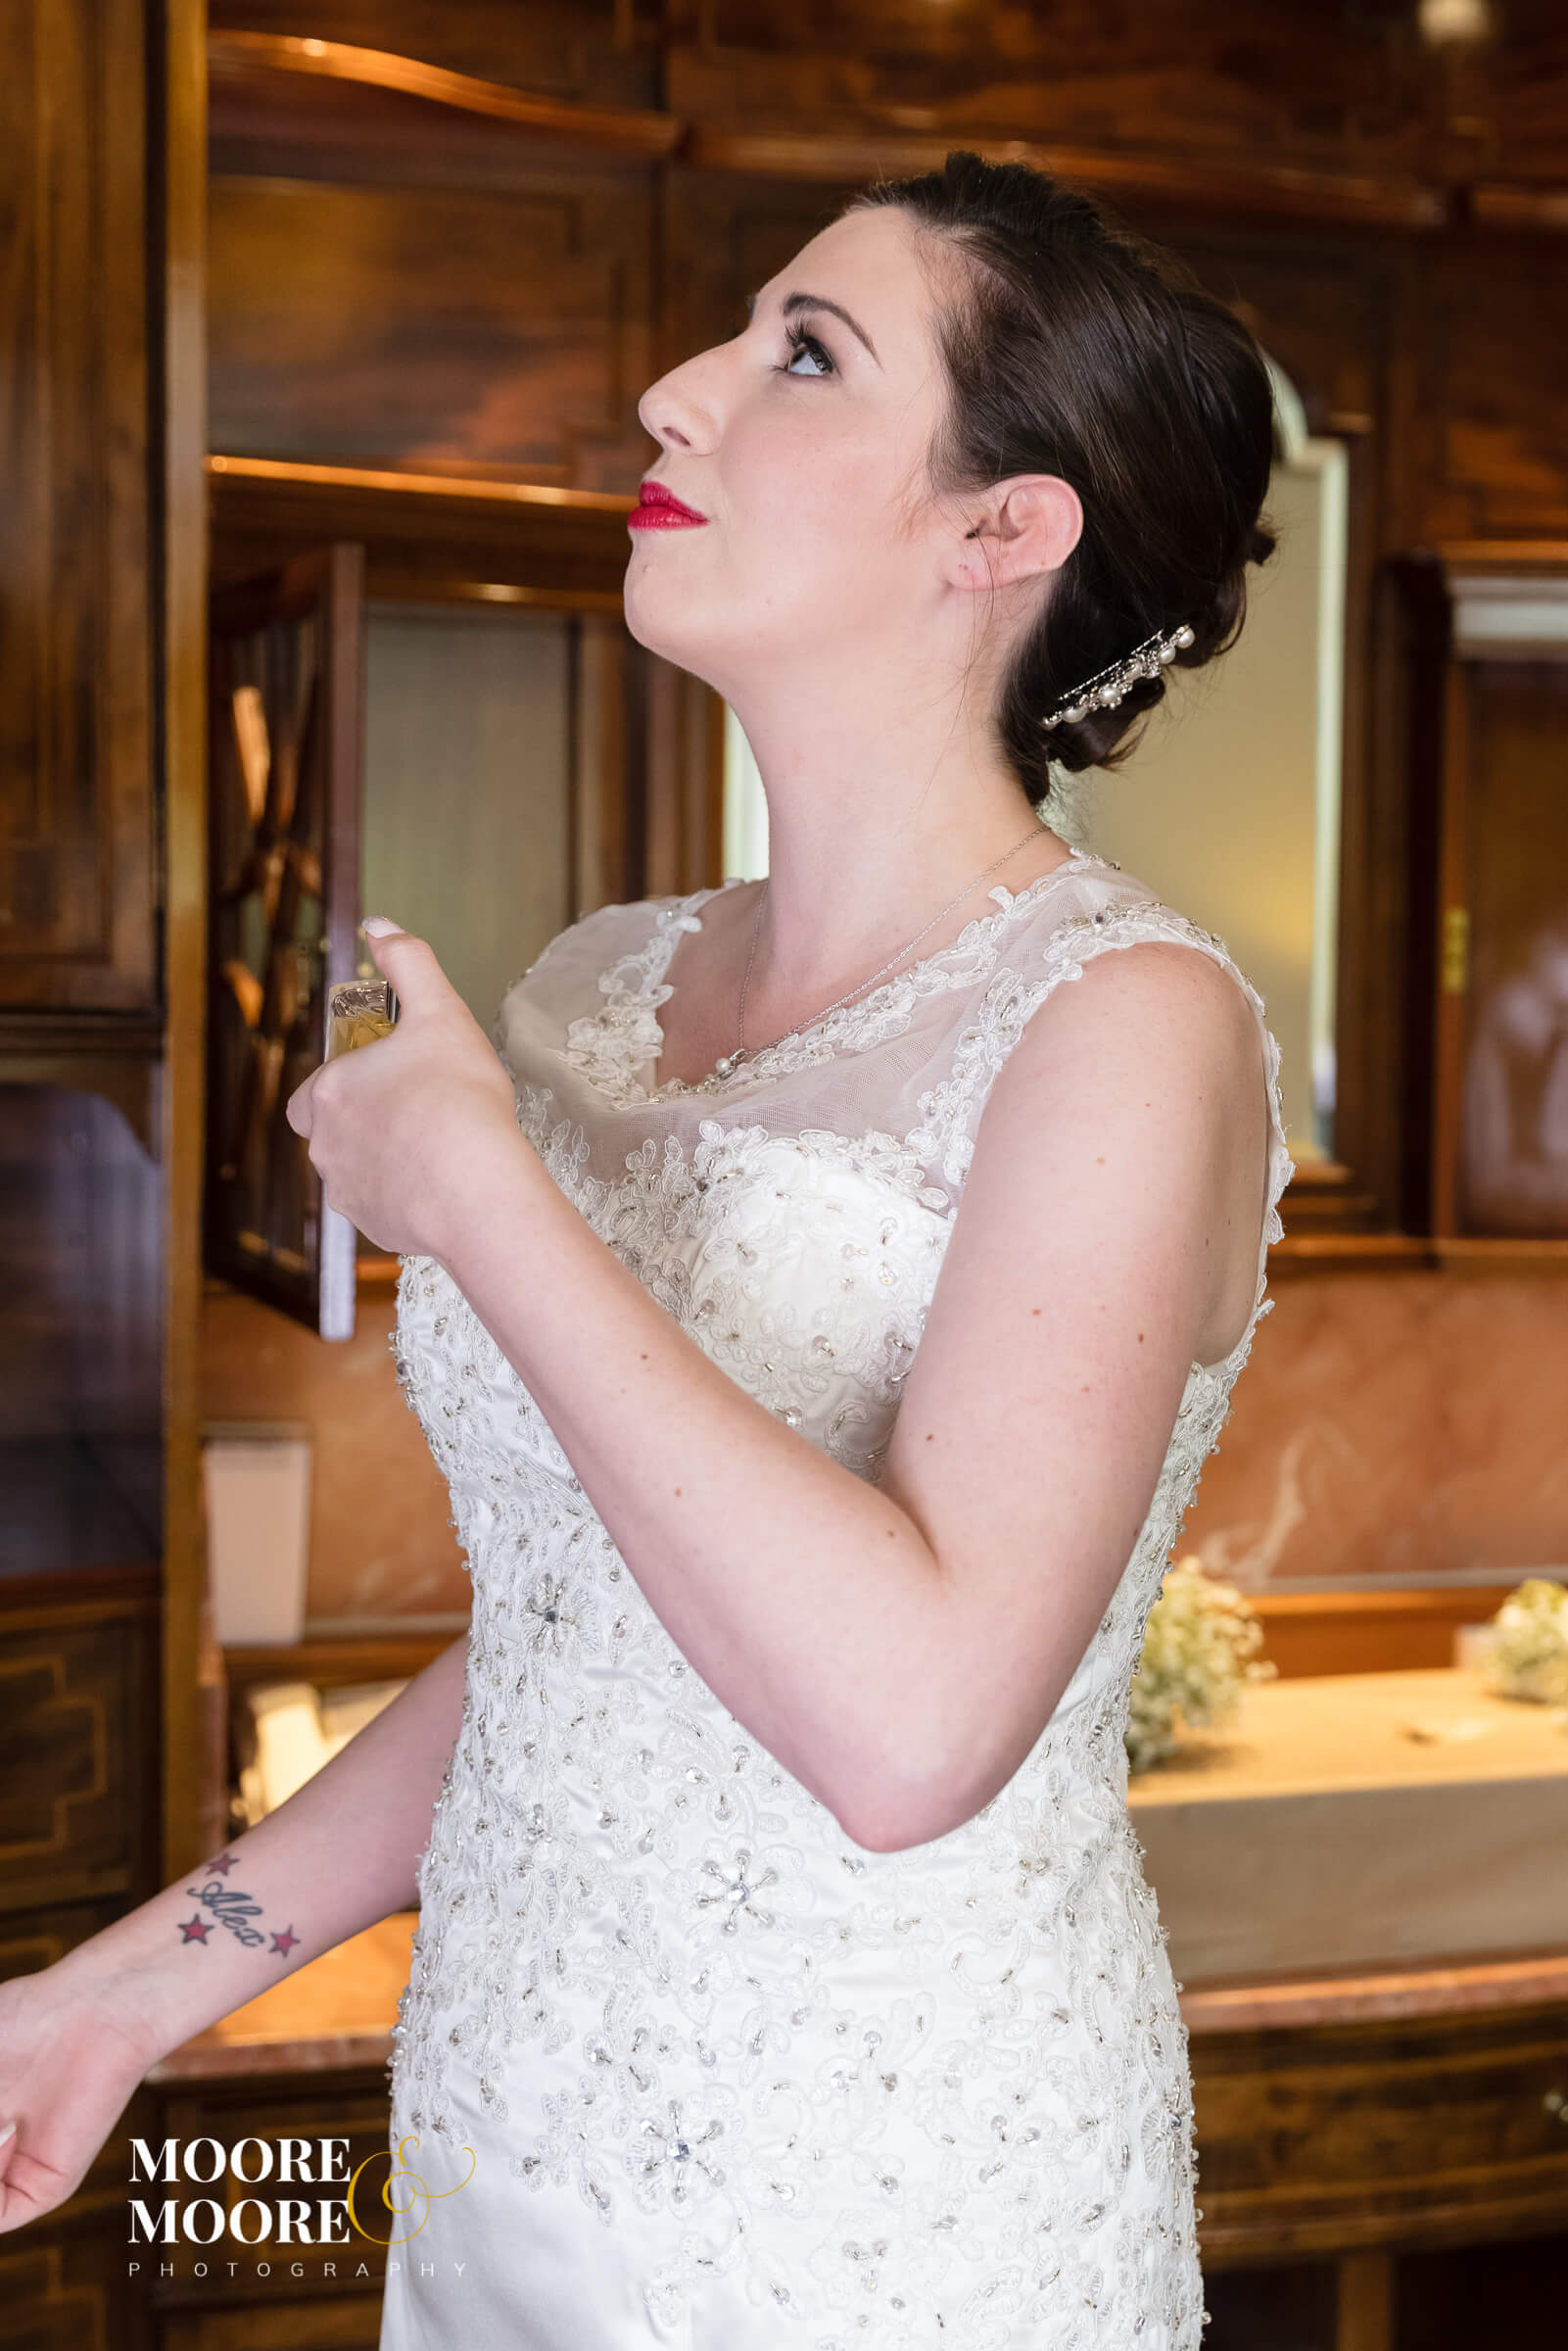 Adding the final touches. Must have wedding photos. Wedding Photographer Hampshire, Berkshire, Surrey